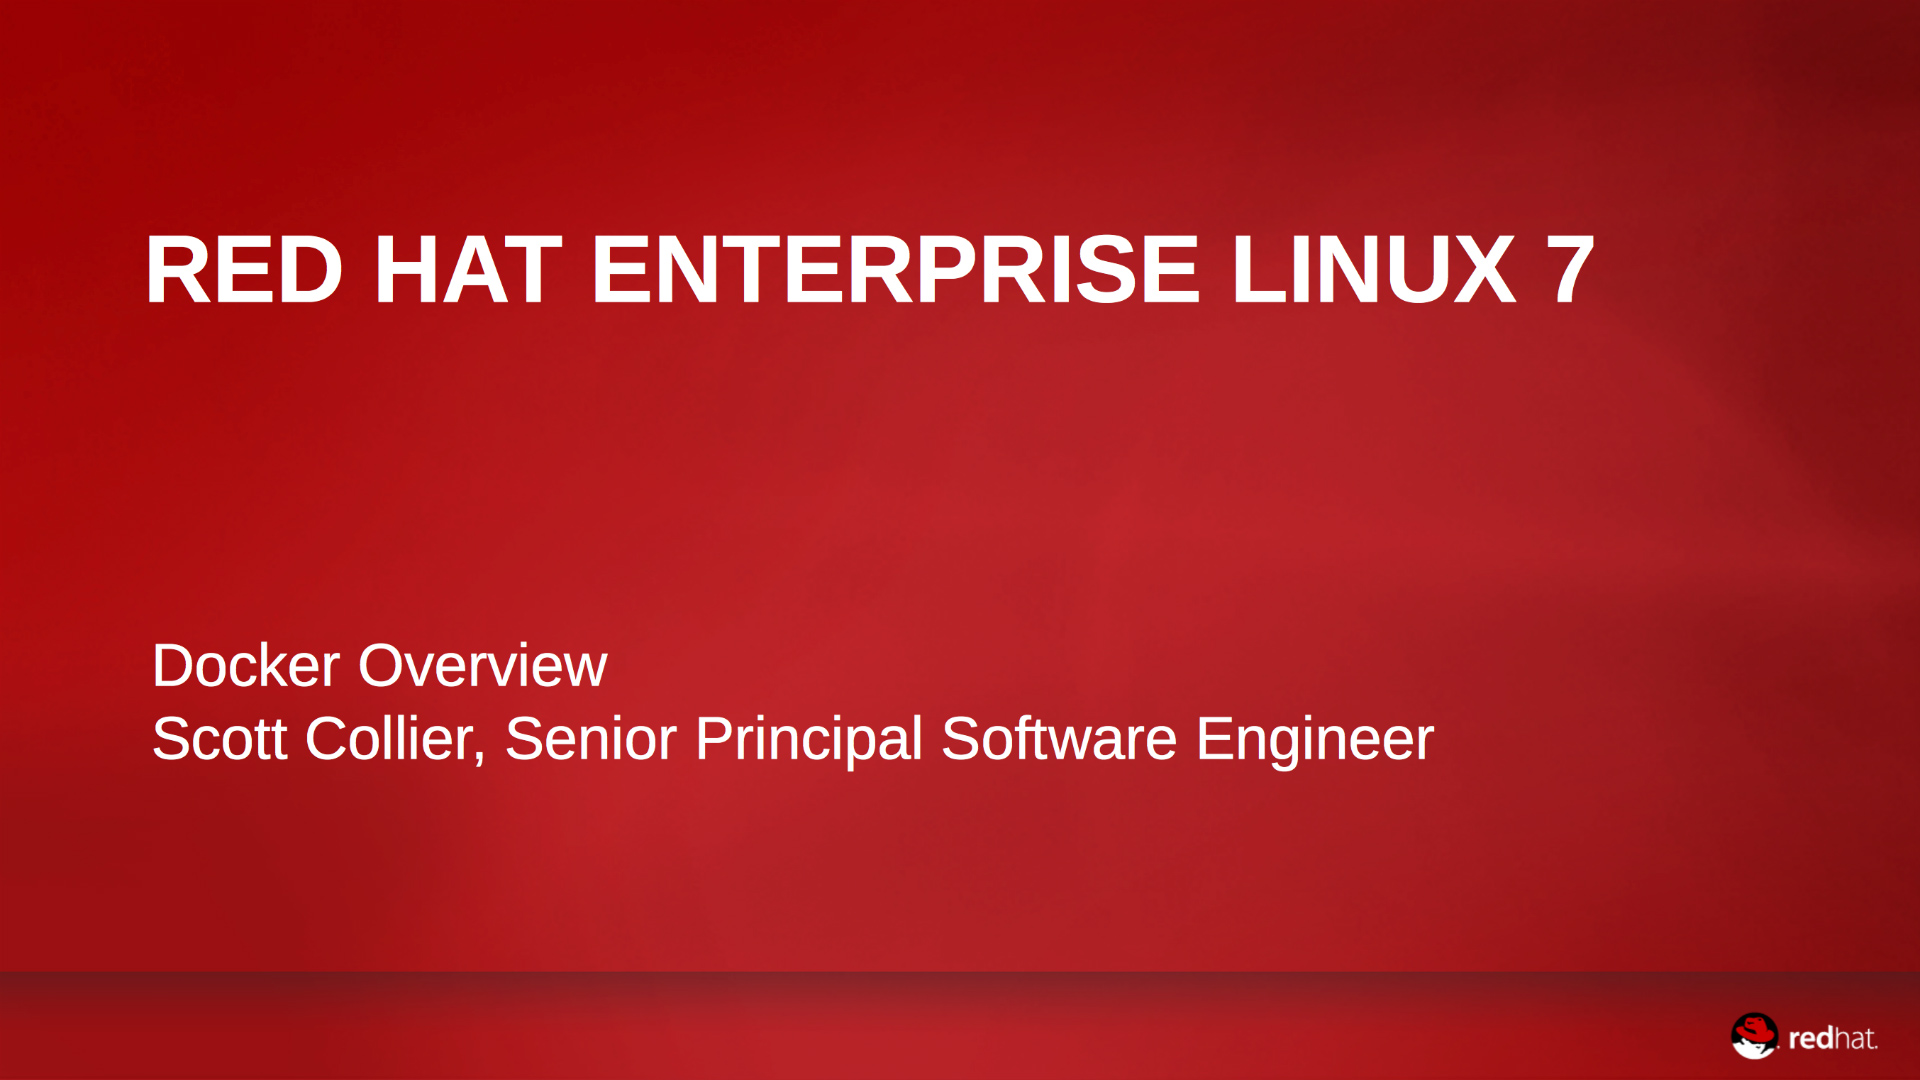 REDHAT ENTERPRISE LINUX Solutions